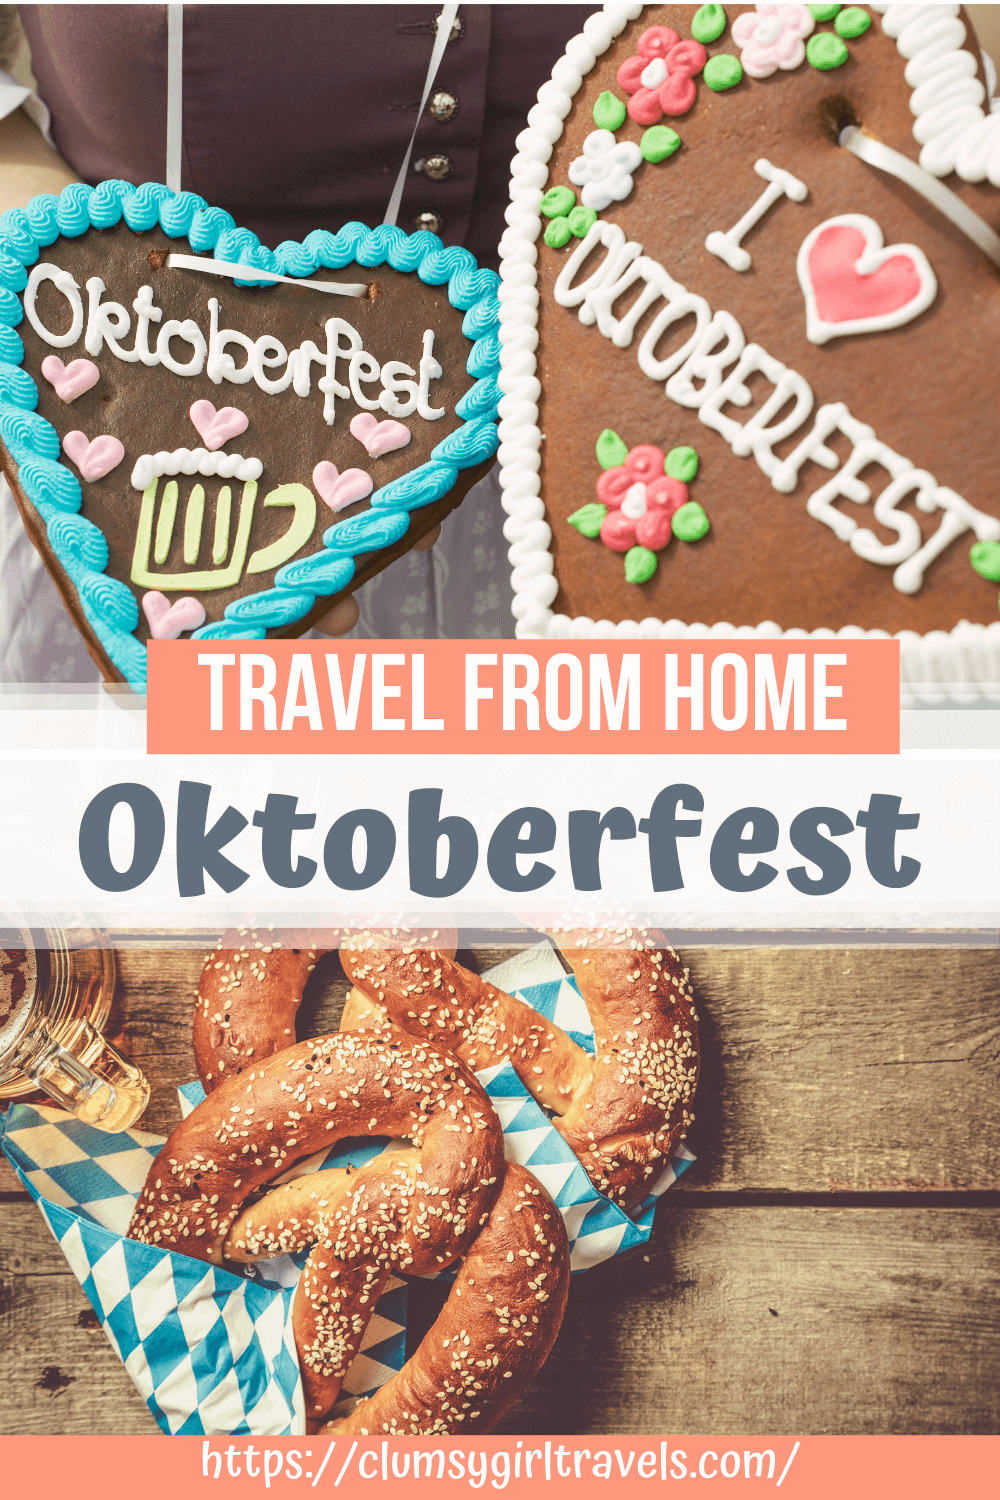 Oktoberfest is the biggest beer festival in the world and with this Oktoberfest virtual guide, you will be able to celebrate Oktoberfest at home. #oktoberfest #oktoberfestathome